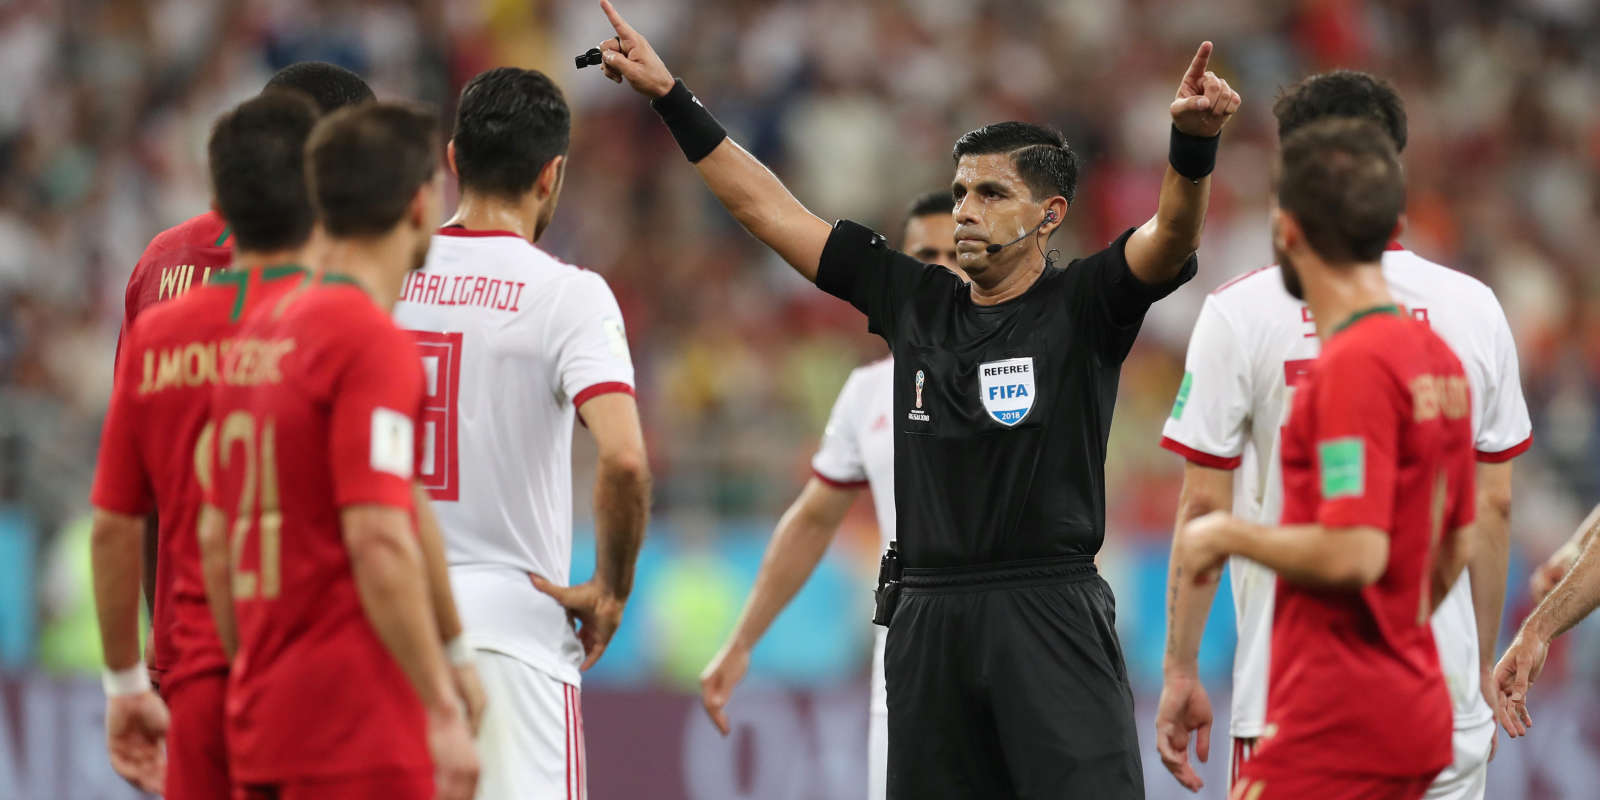 Soccer Football - World Cup - Group B - Iran vs Portugal - Mordovia Arena, Saransk, Russia - June 25, 2018 Referee Enrique Caceres reviews a incident on VAR before awarding Iran a penalty REUTERS/Ricardo Moraes